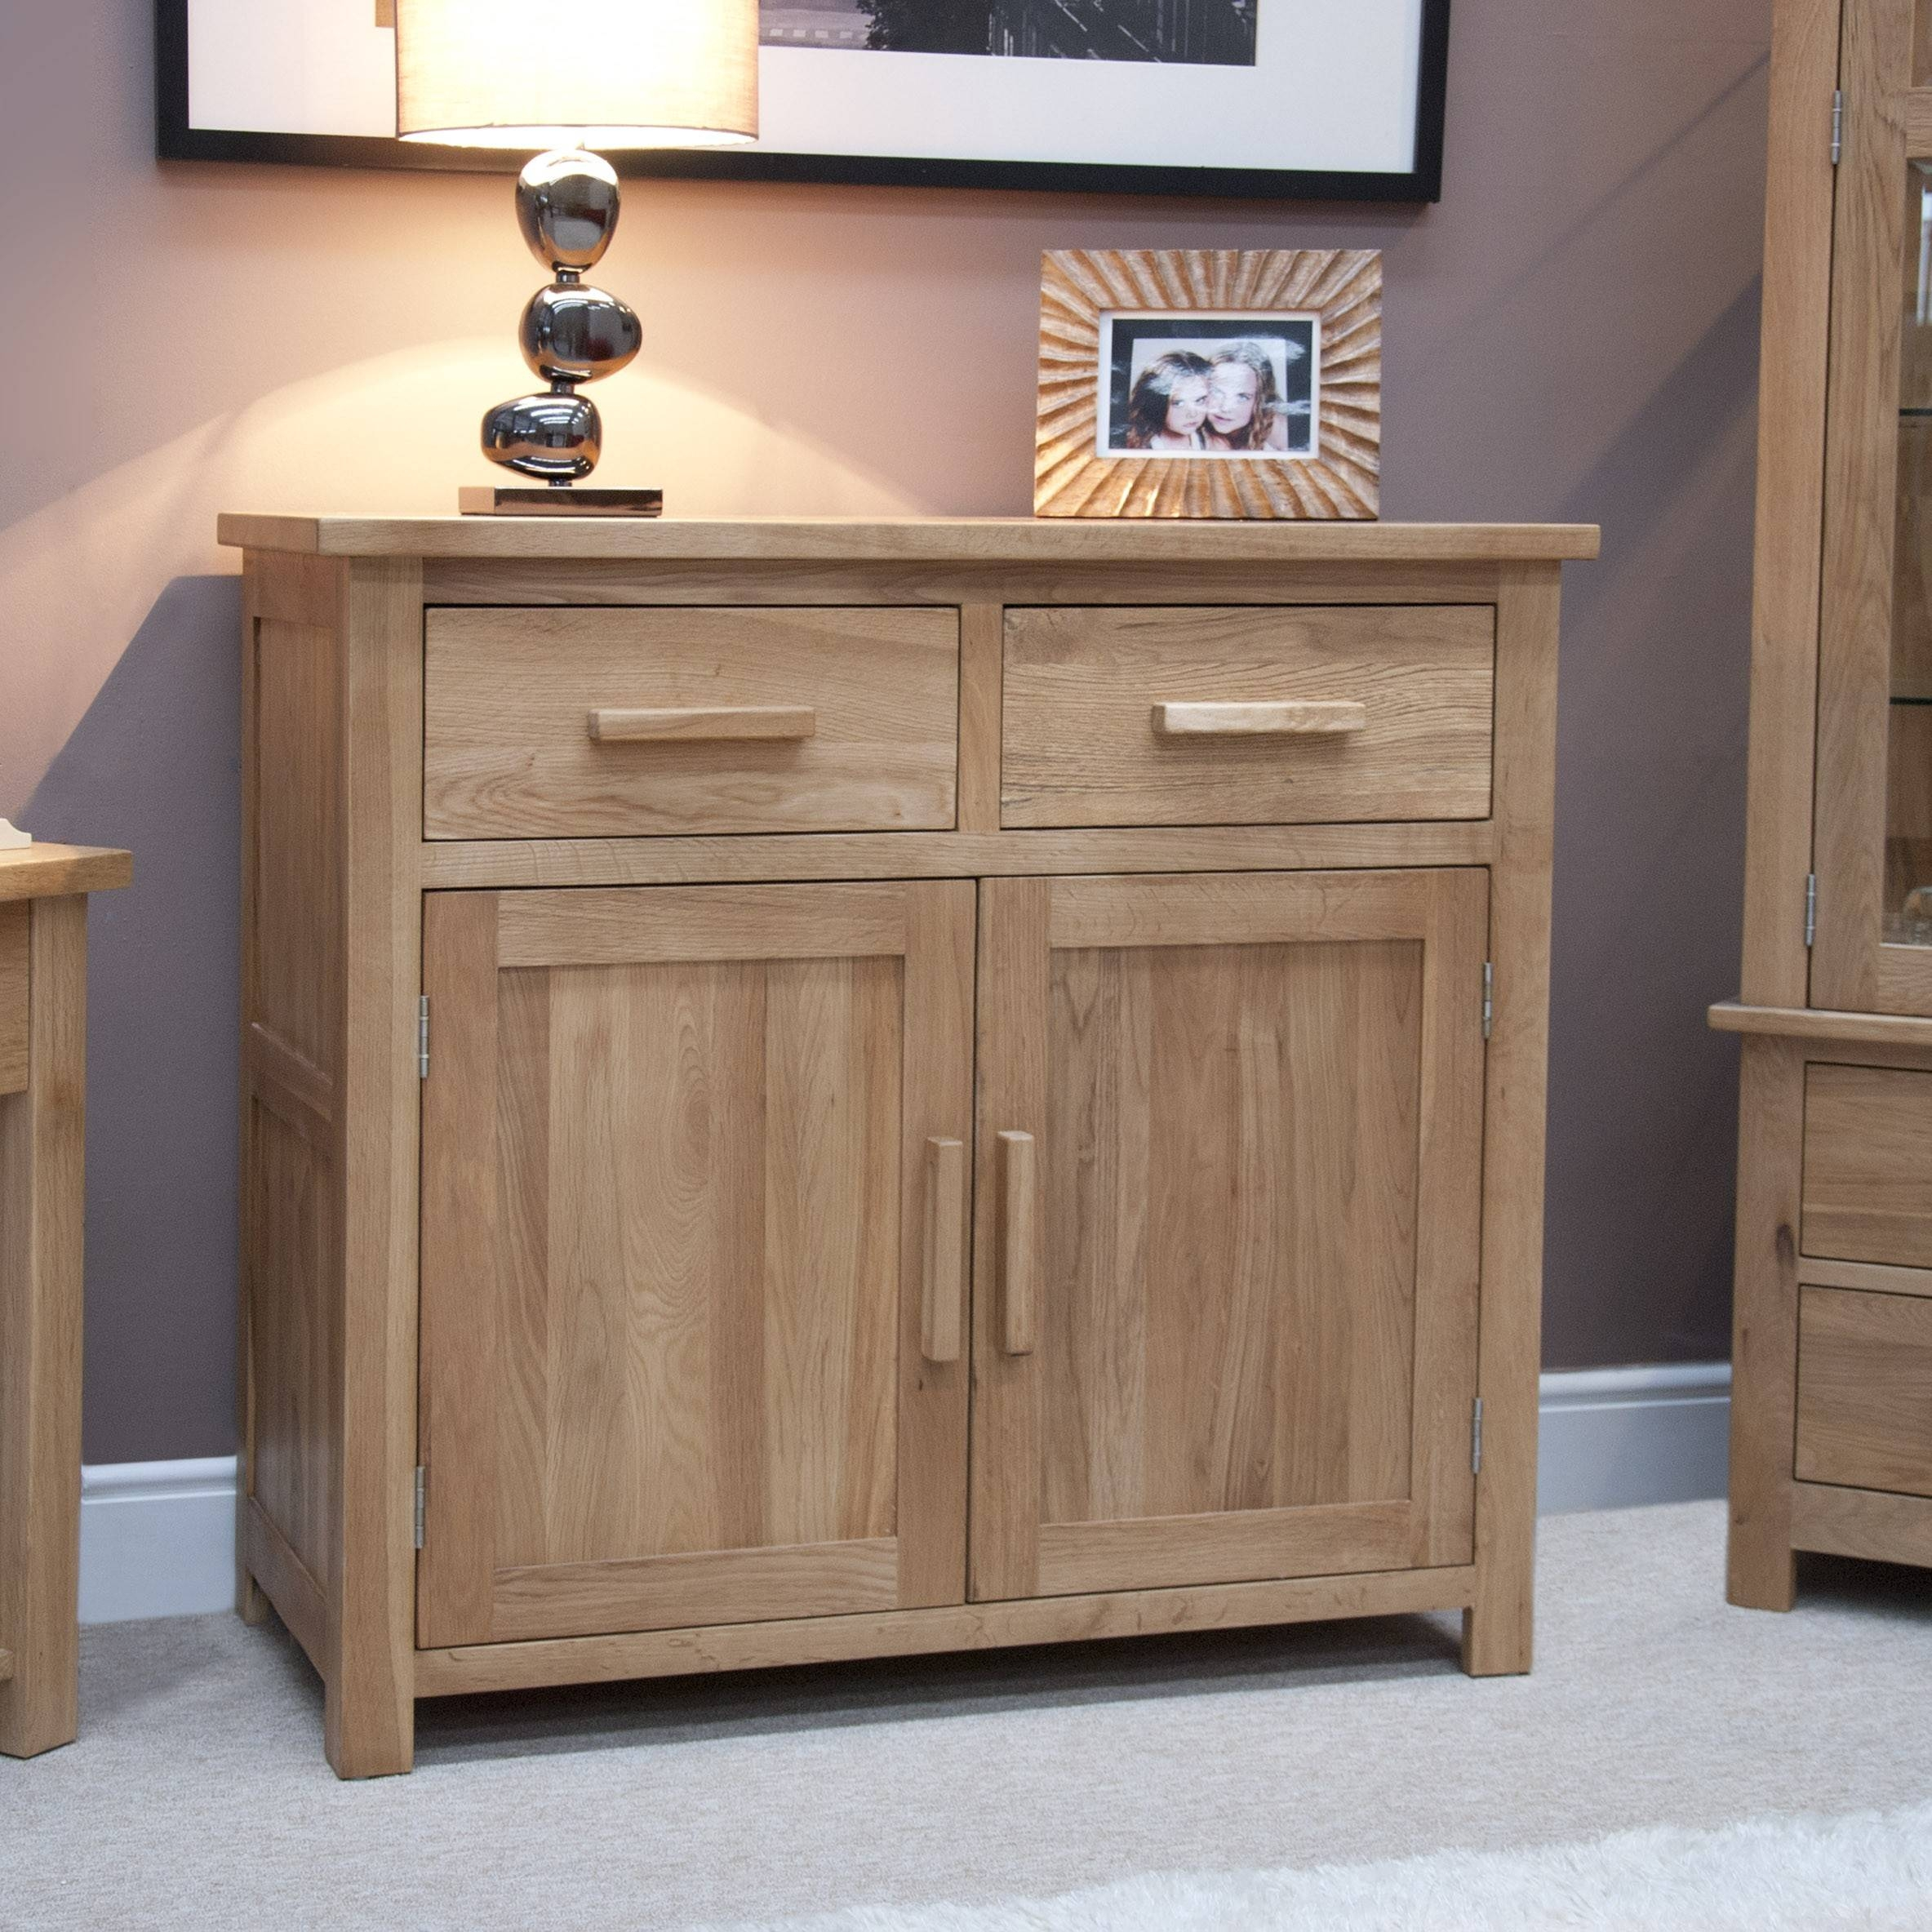 Opus Oak Furniture Small Sideboard | Furniture4Yourhome For Small Sideboards (#10 of 20)